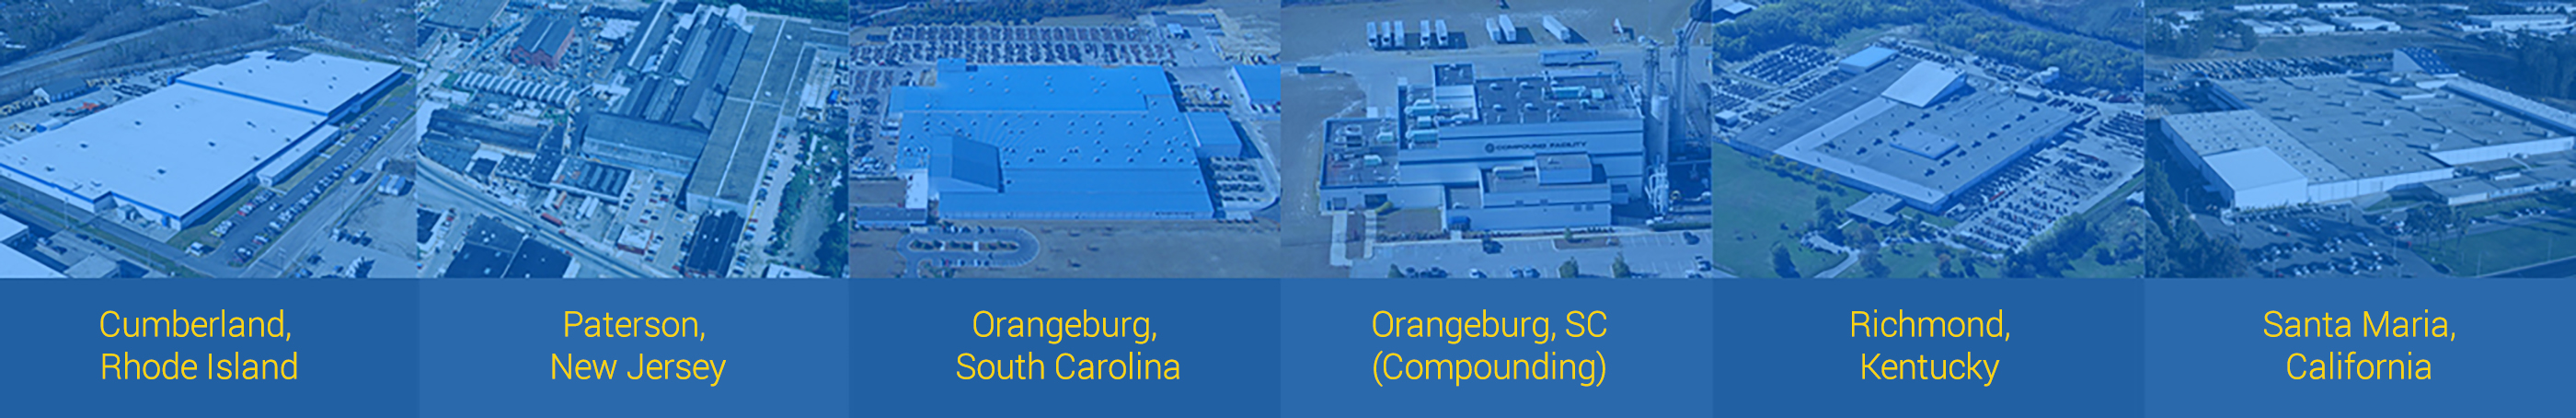 Our Manufacuturing Locations